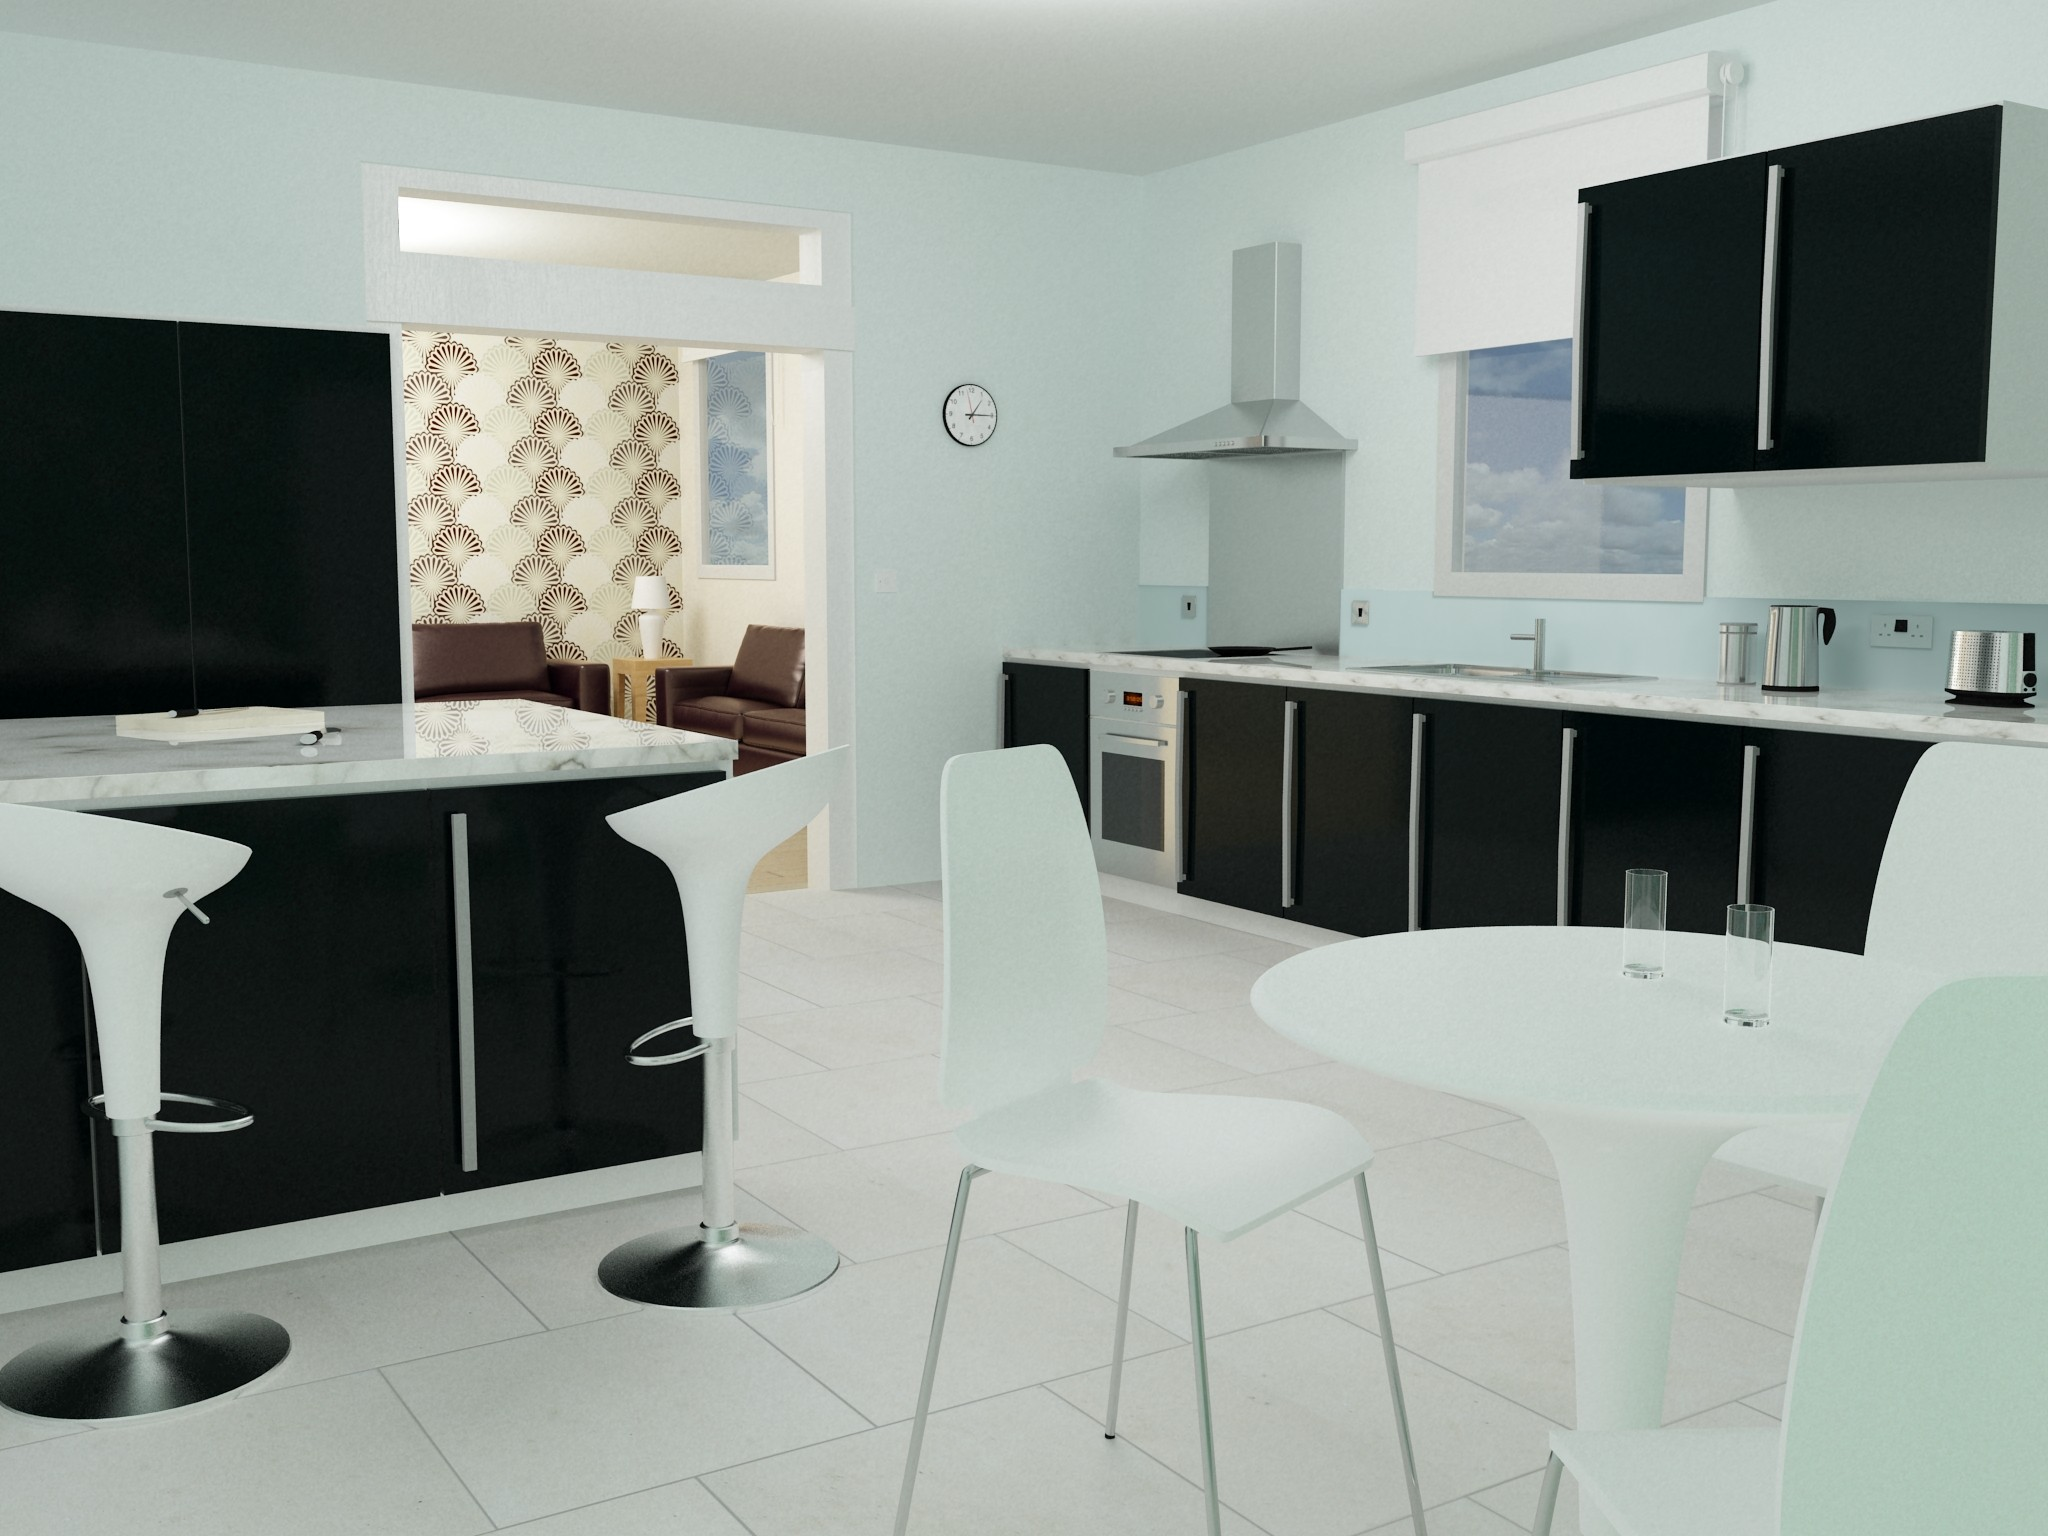 Kitchen Render 2.jpg